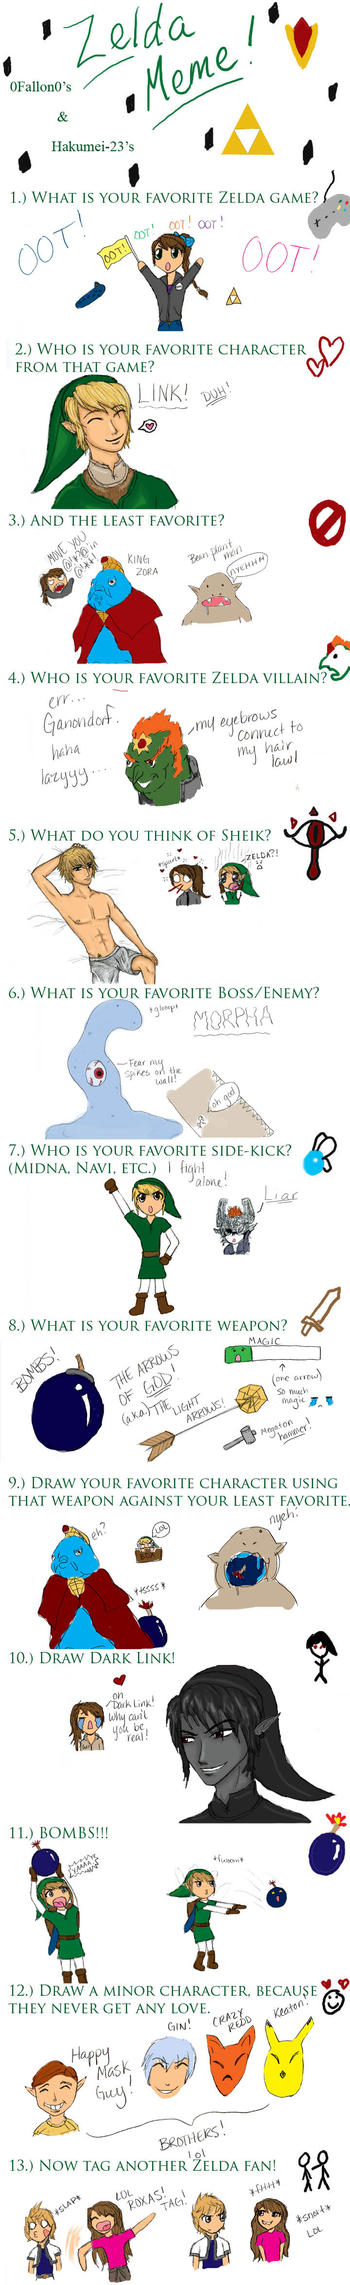 Zelda Meme Finished by 0Fallon0